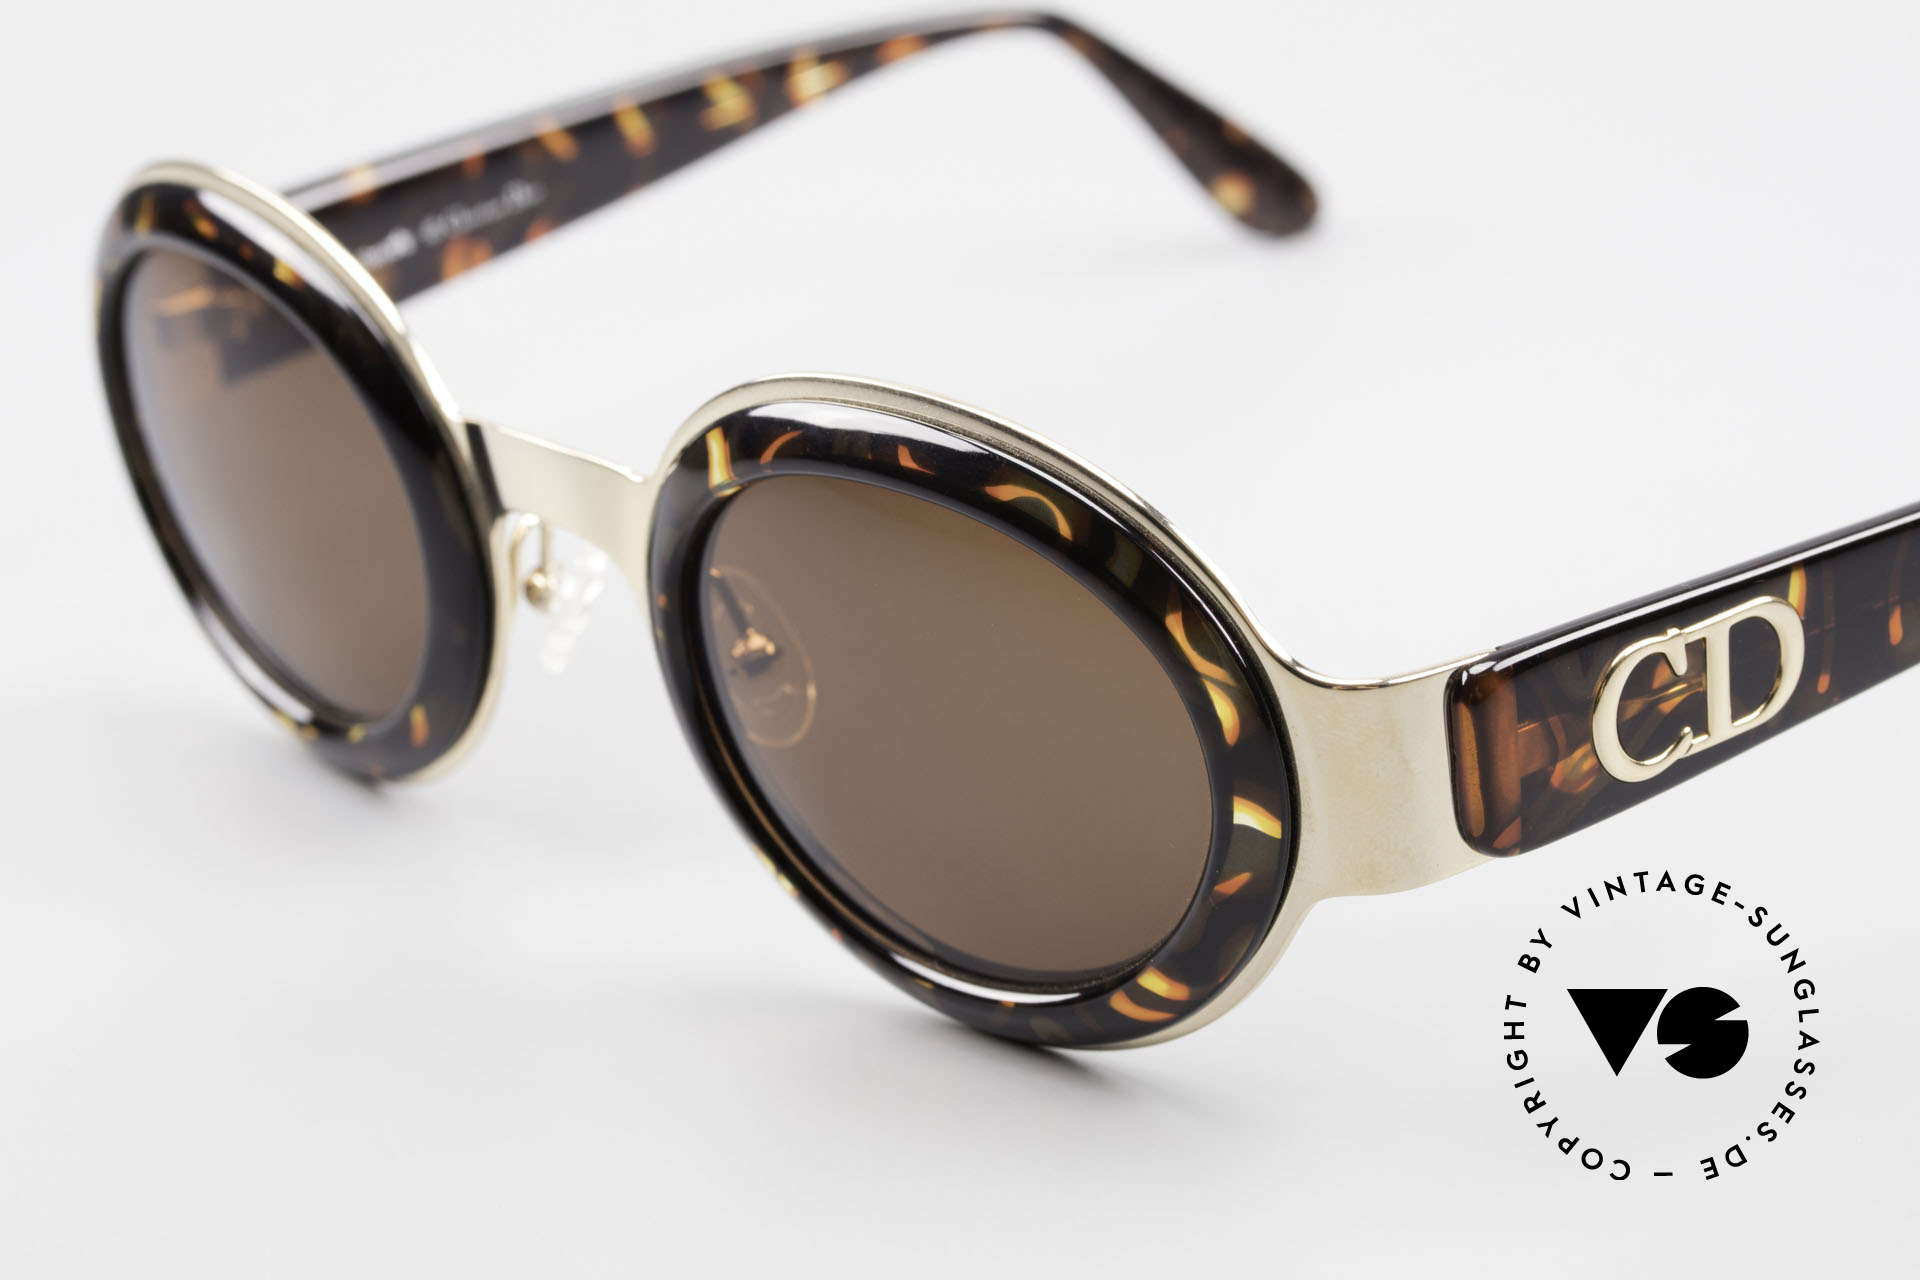 Christian Dior 2037 Round Ladies Sunglasses 90's, unworn, flawless condition (like all our CD shades), Made for Women